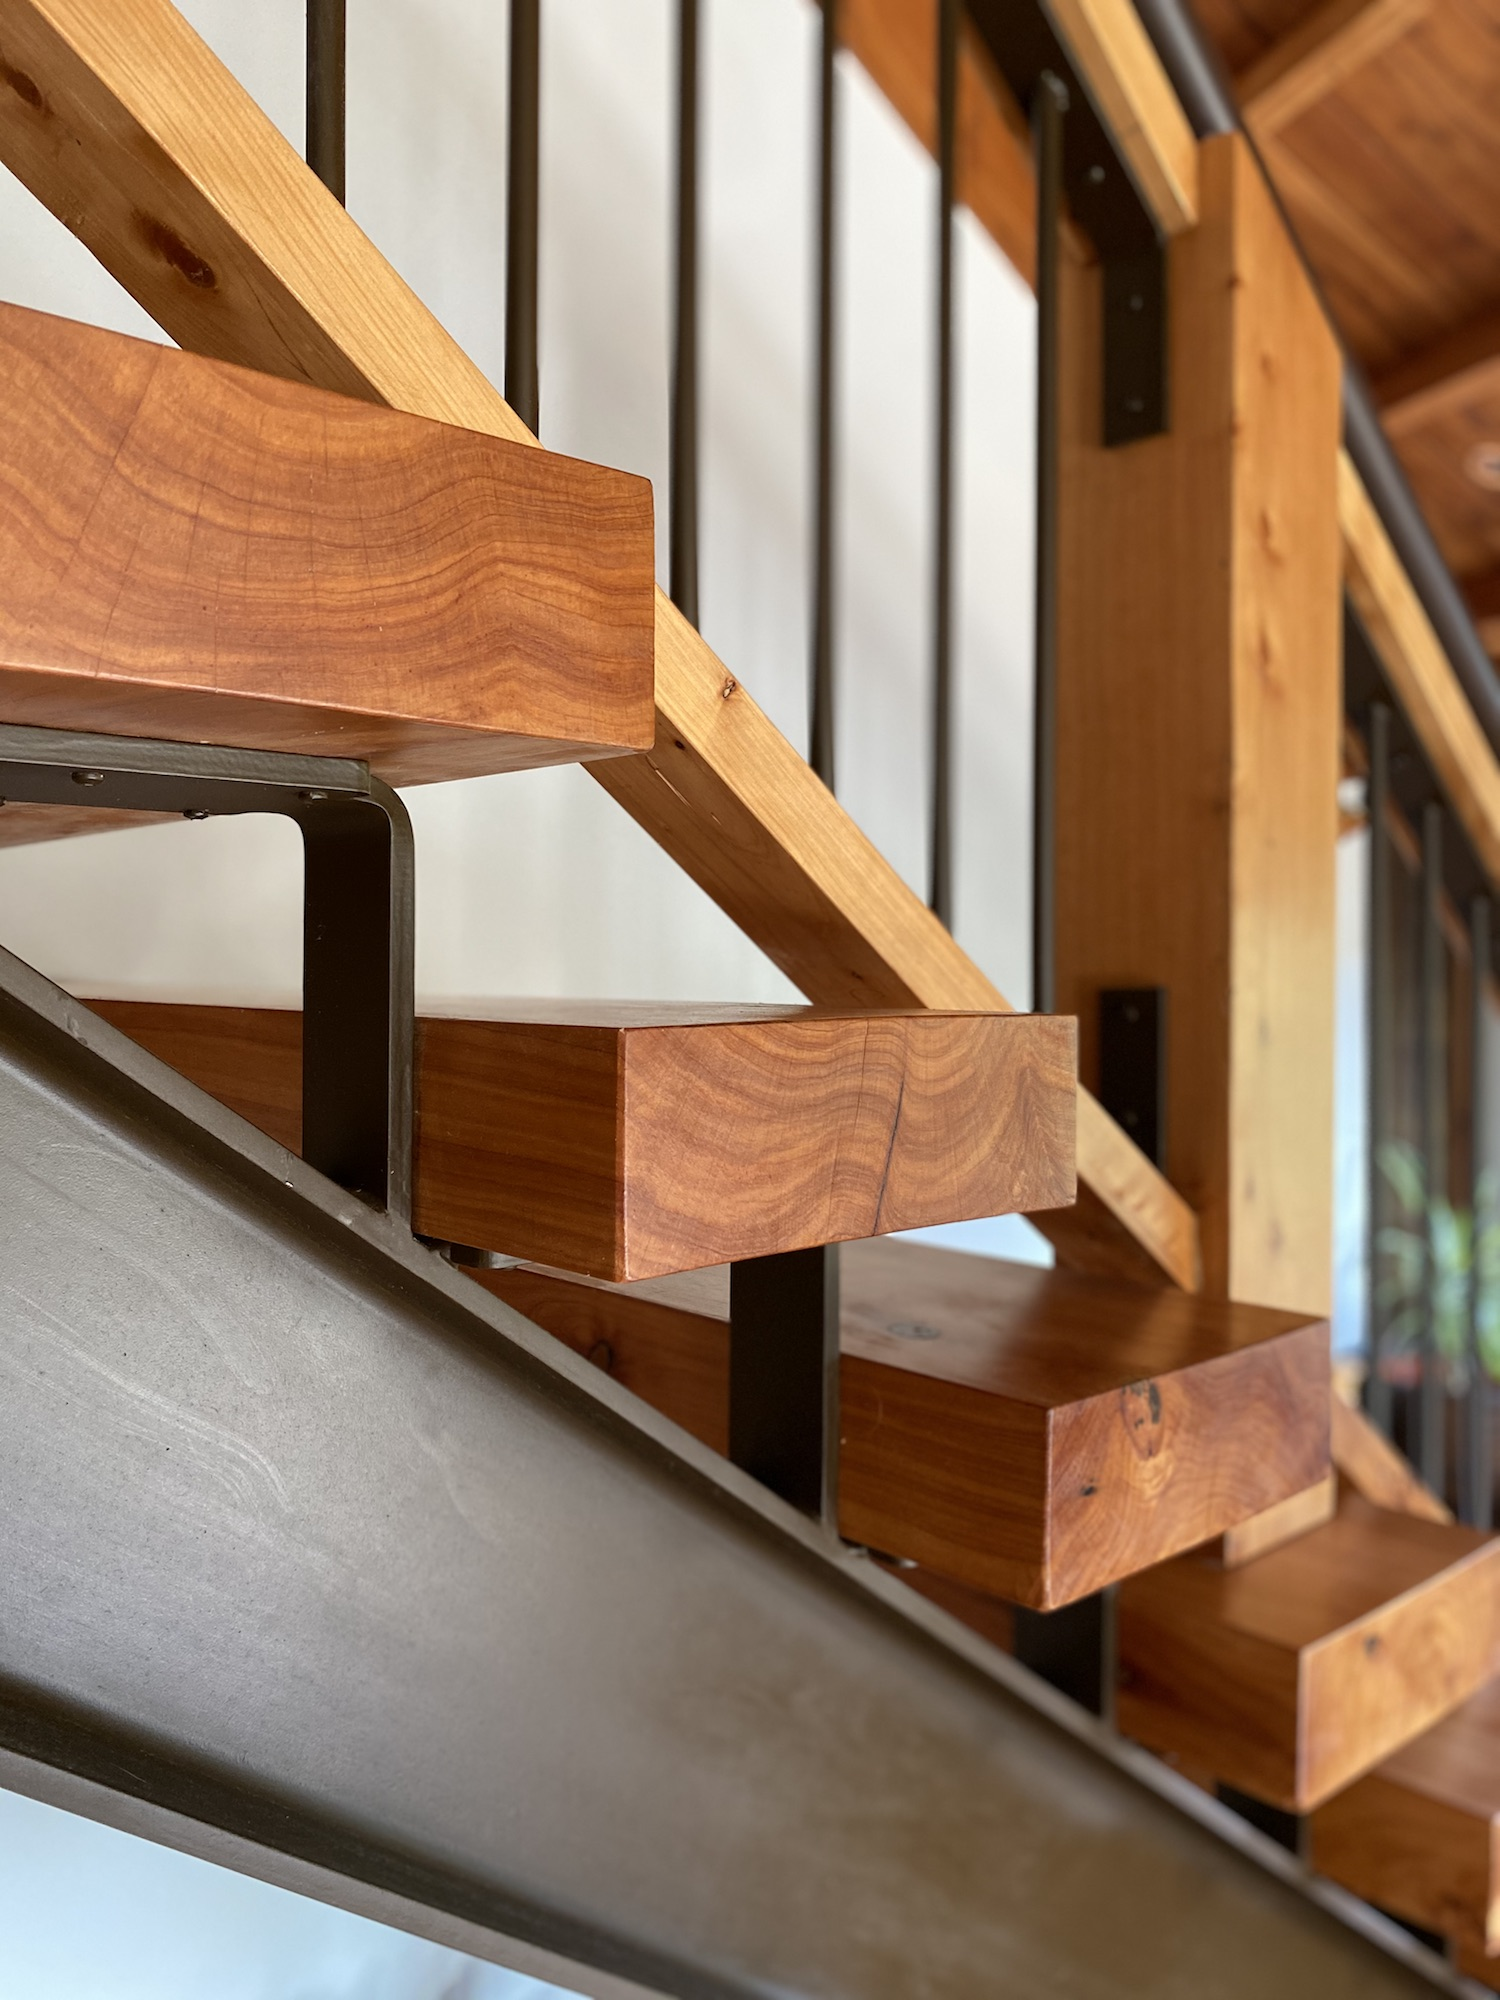 Steel frame for wooden staircase built by Stairworks in Auckland